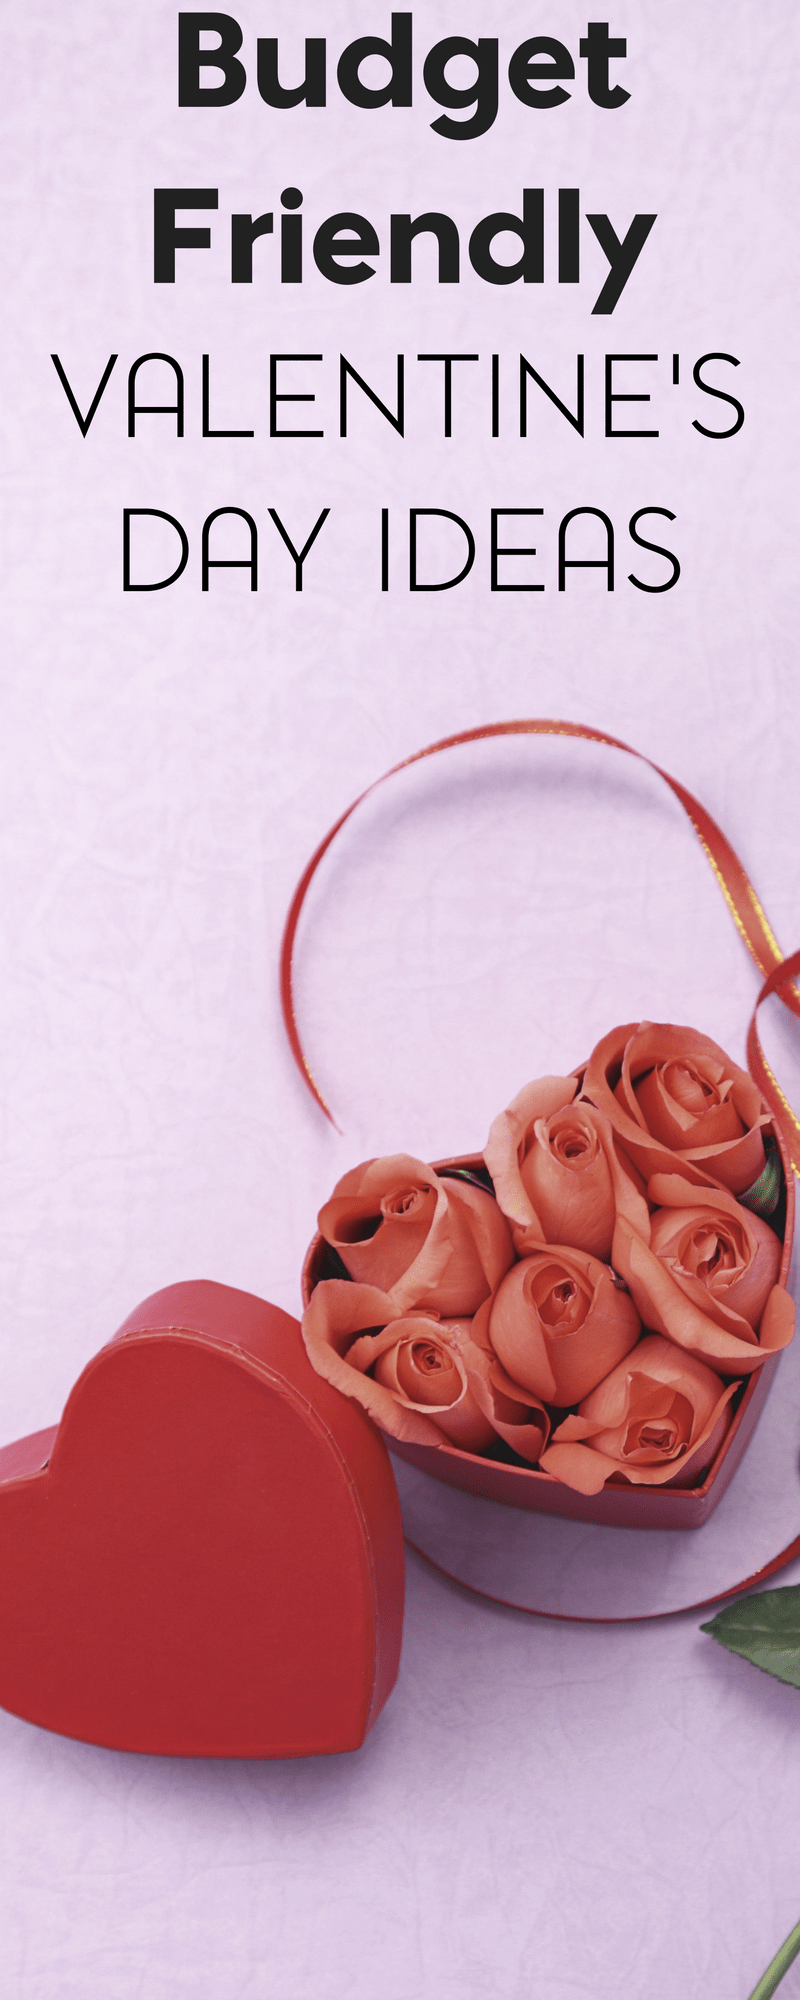 How to Have a Budget Friendly Valentine's Day 3